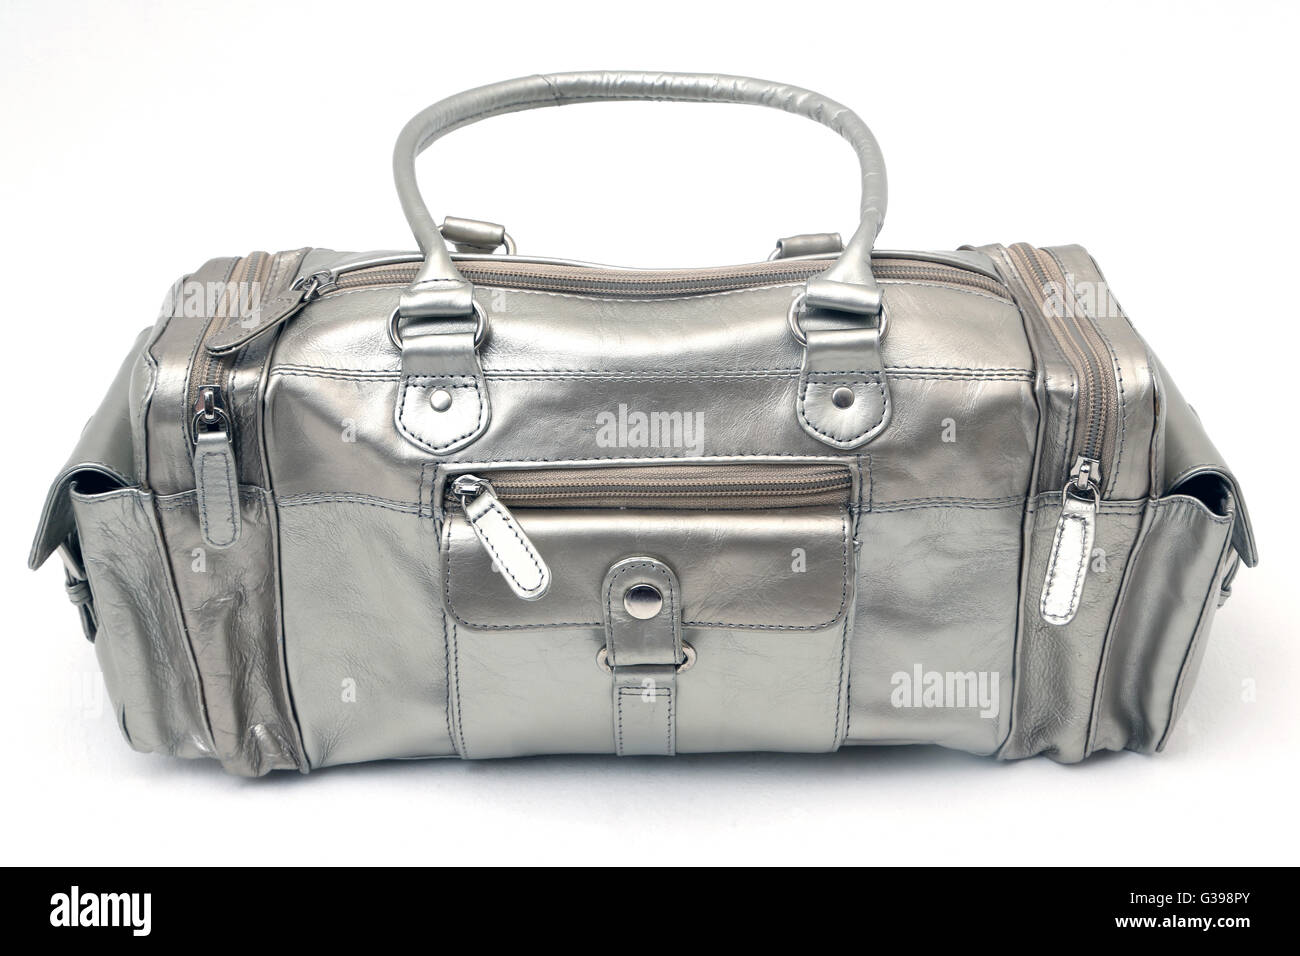 Silver Grab Bag With Pockets - Stock Image